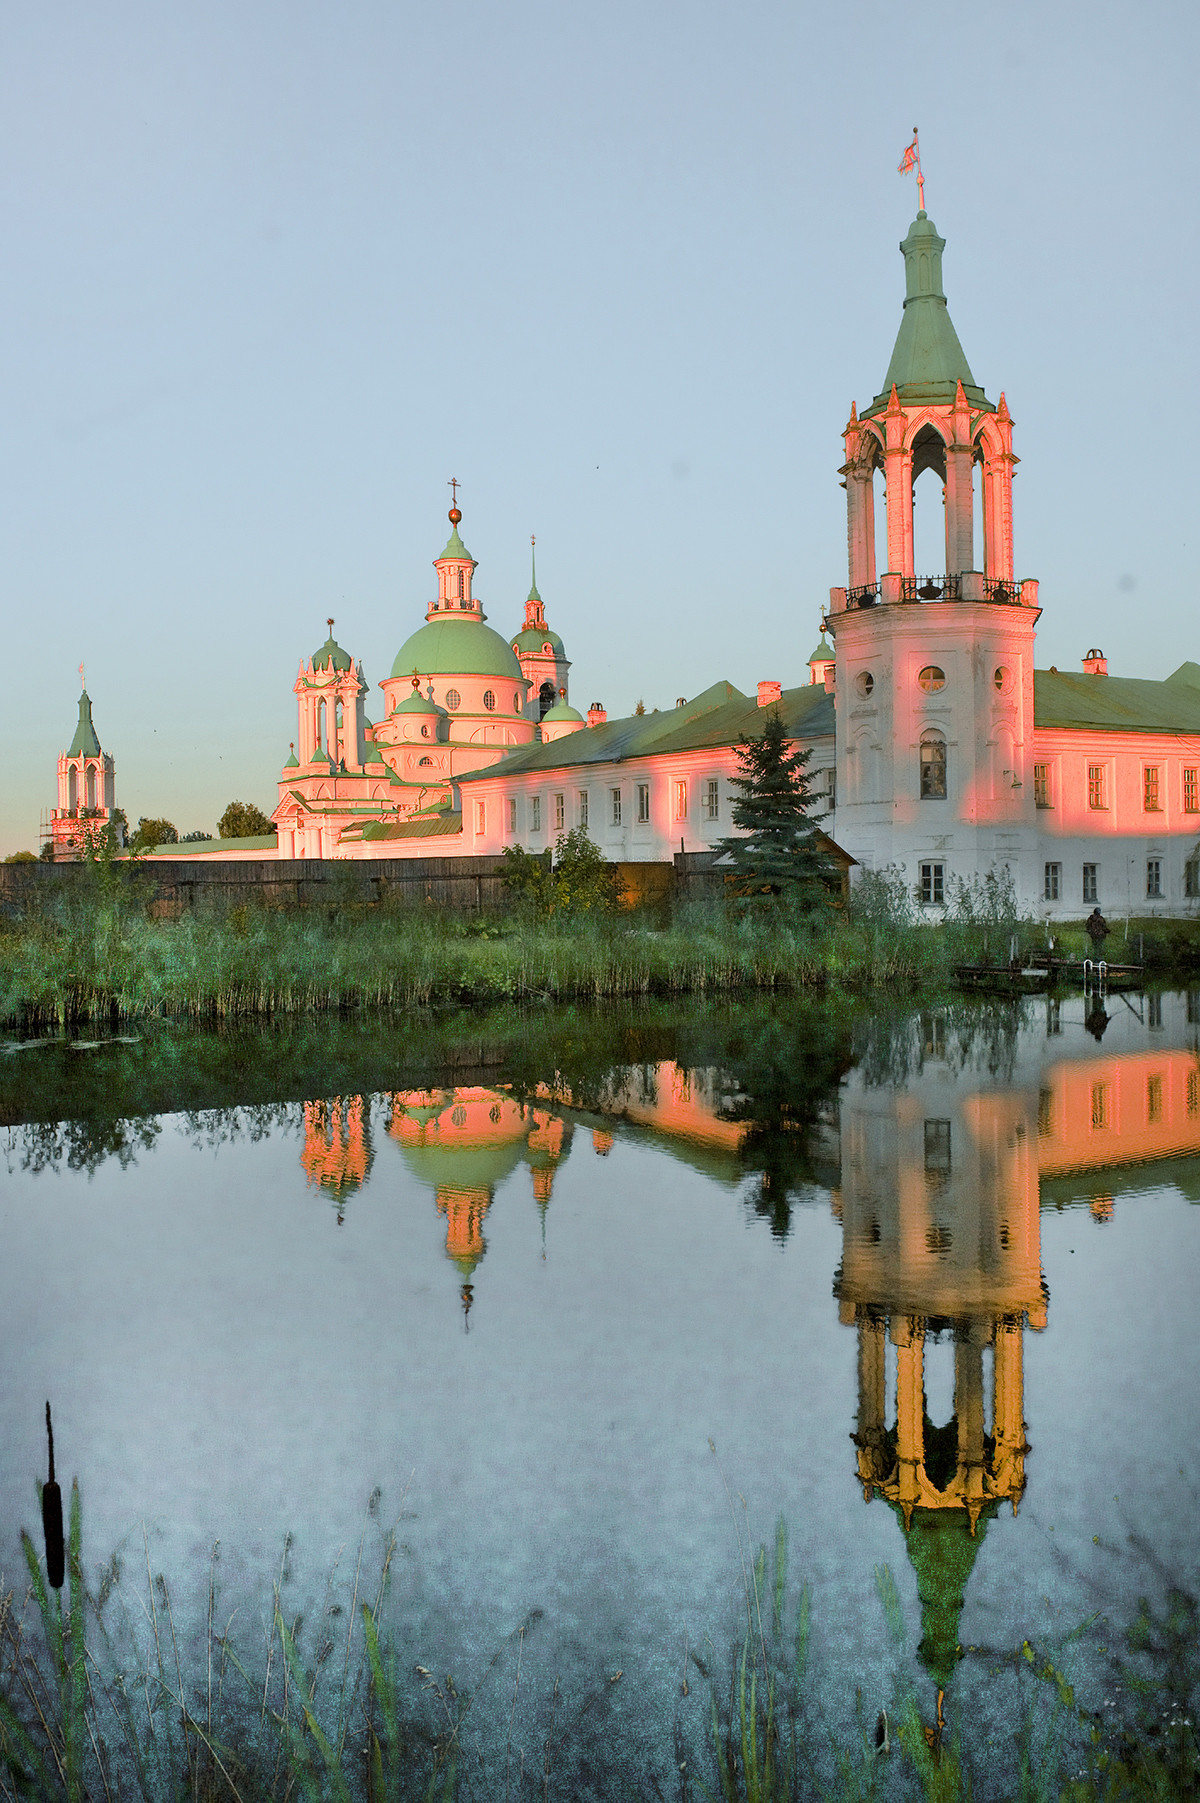 North wall, northwest view across monastery pond.  From left: Northeast corner tower, North Gate, Church of St. Dimitry of Rostov, cloisters & northwest corner tower. July 7, 2019.